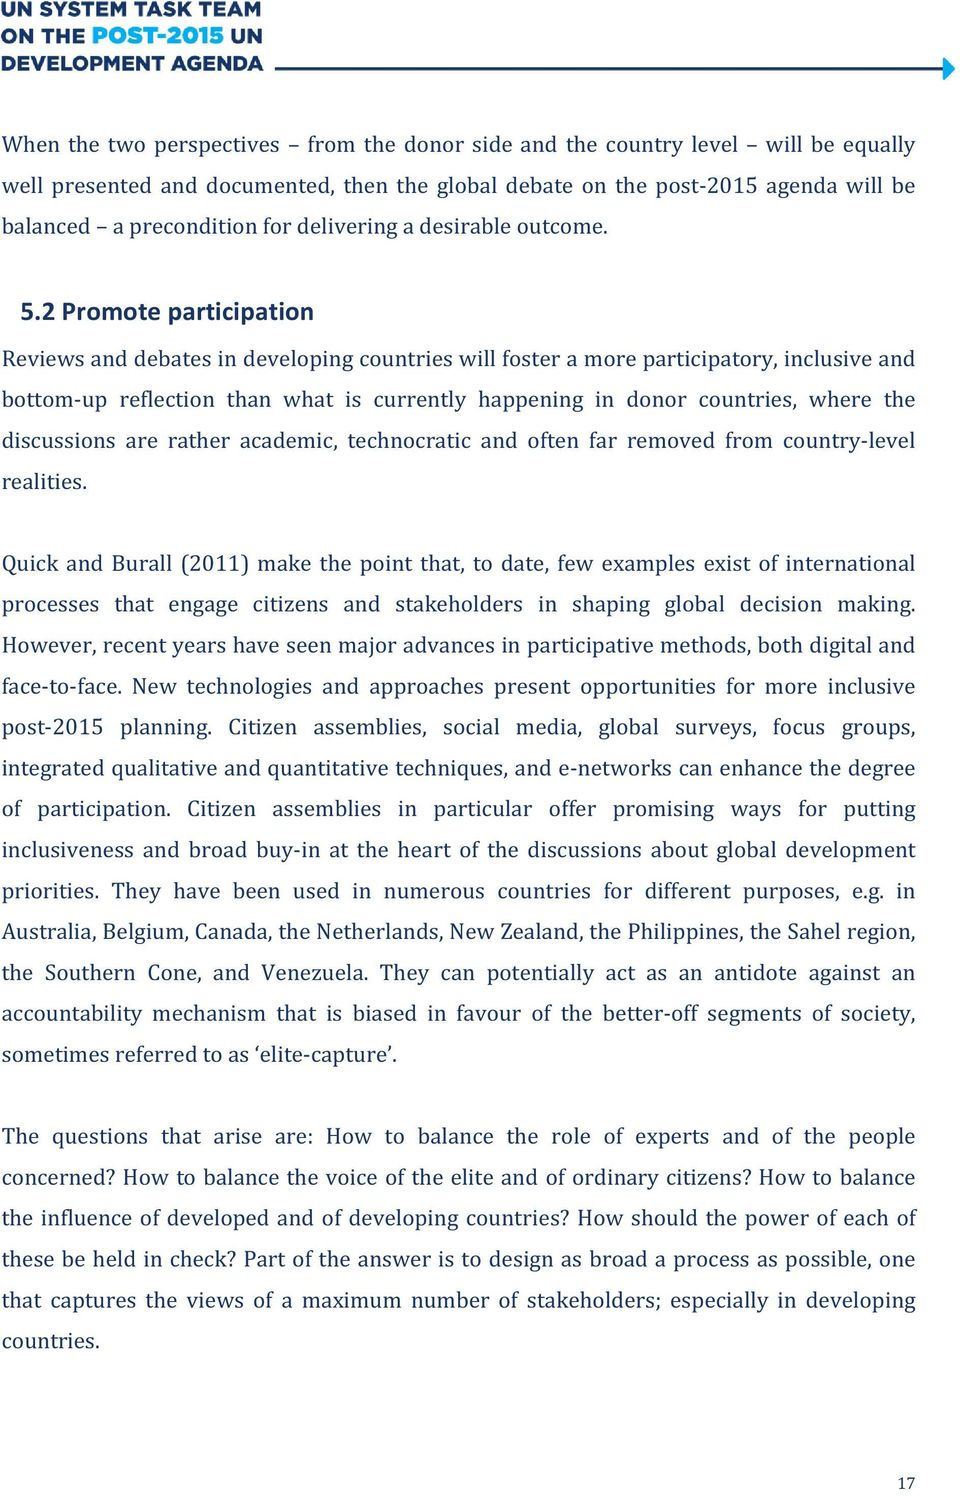 2 Promote participation Reviews and debates in developing countries will foster a more participatory, inclusive and bottom-up reflection than what is currently happening in donor countries, where the